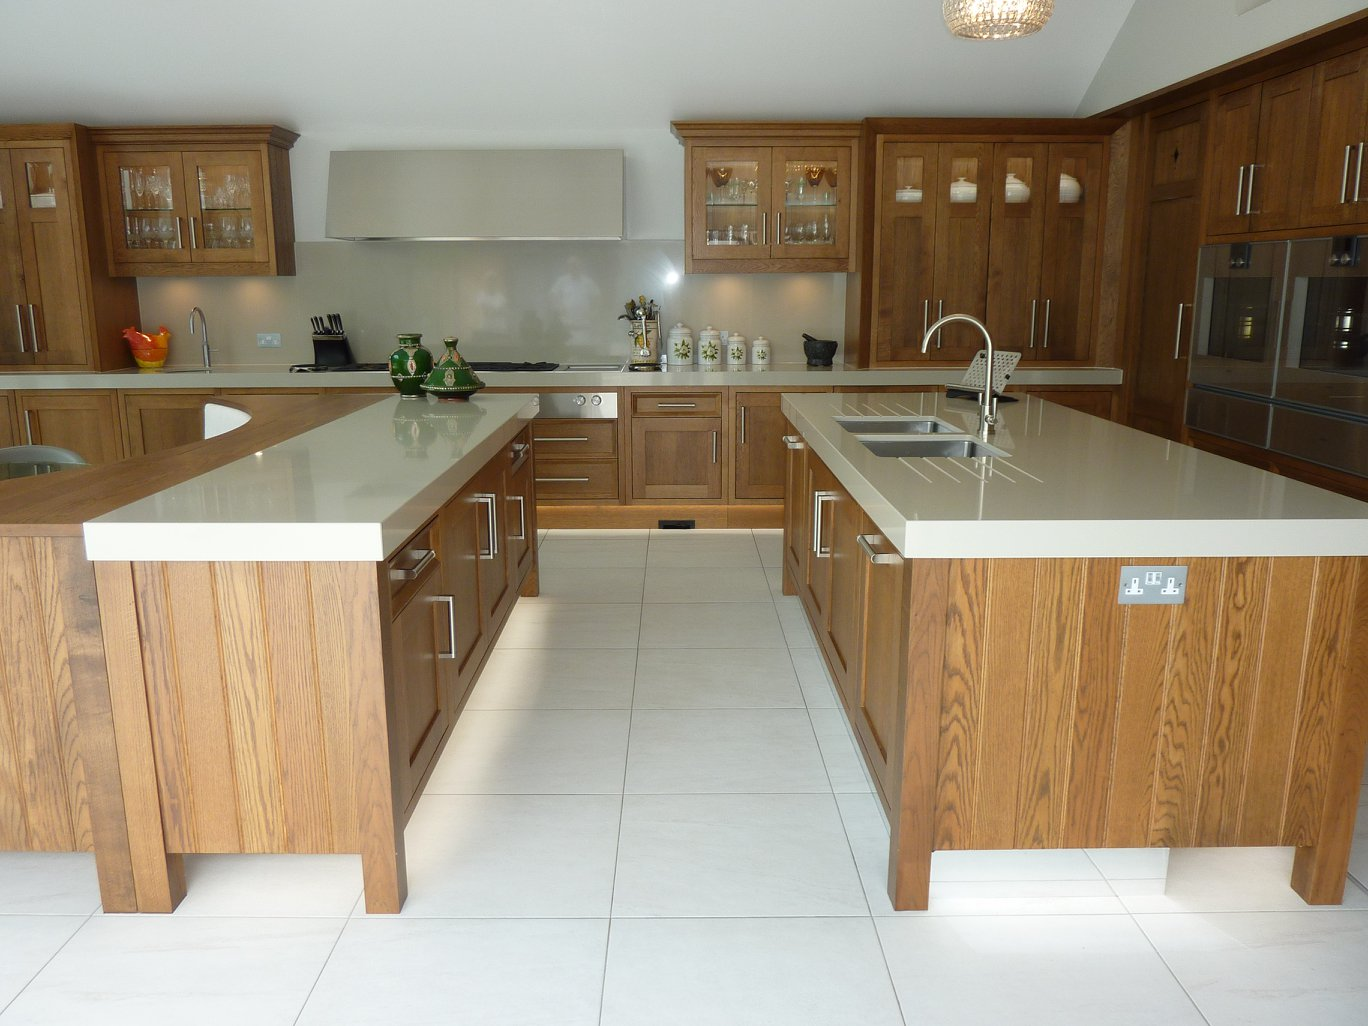 Dark Oak Shaker Style Kitchen-5.jpg